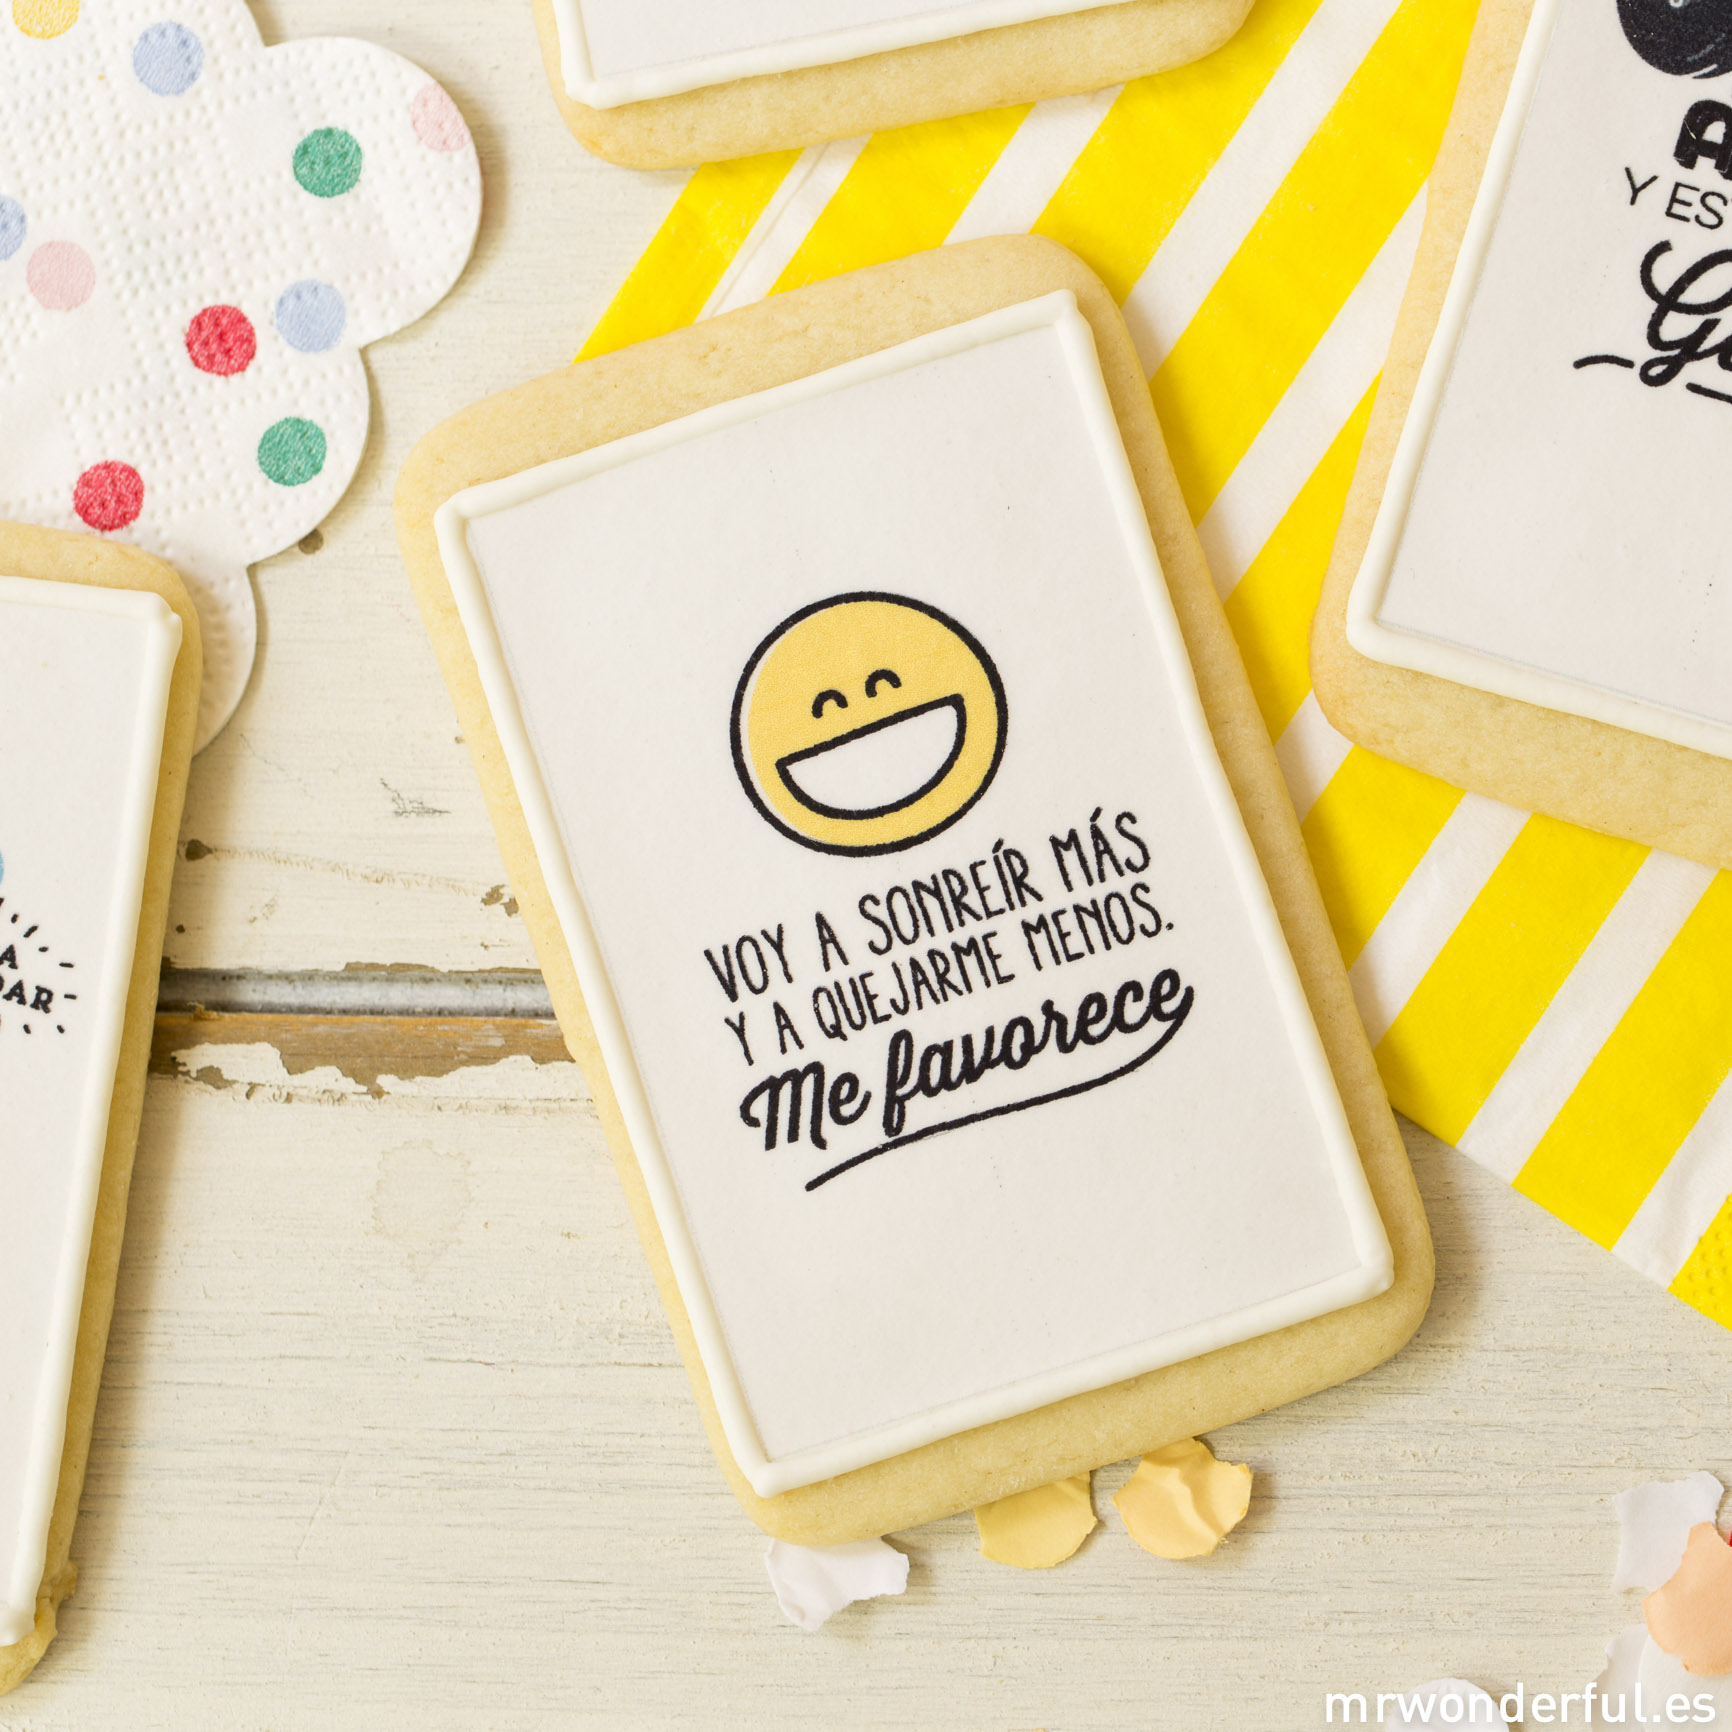 mrwonderful_colaboraciones_galletas-kukis_SEP2014-63